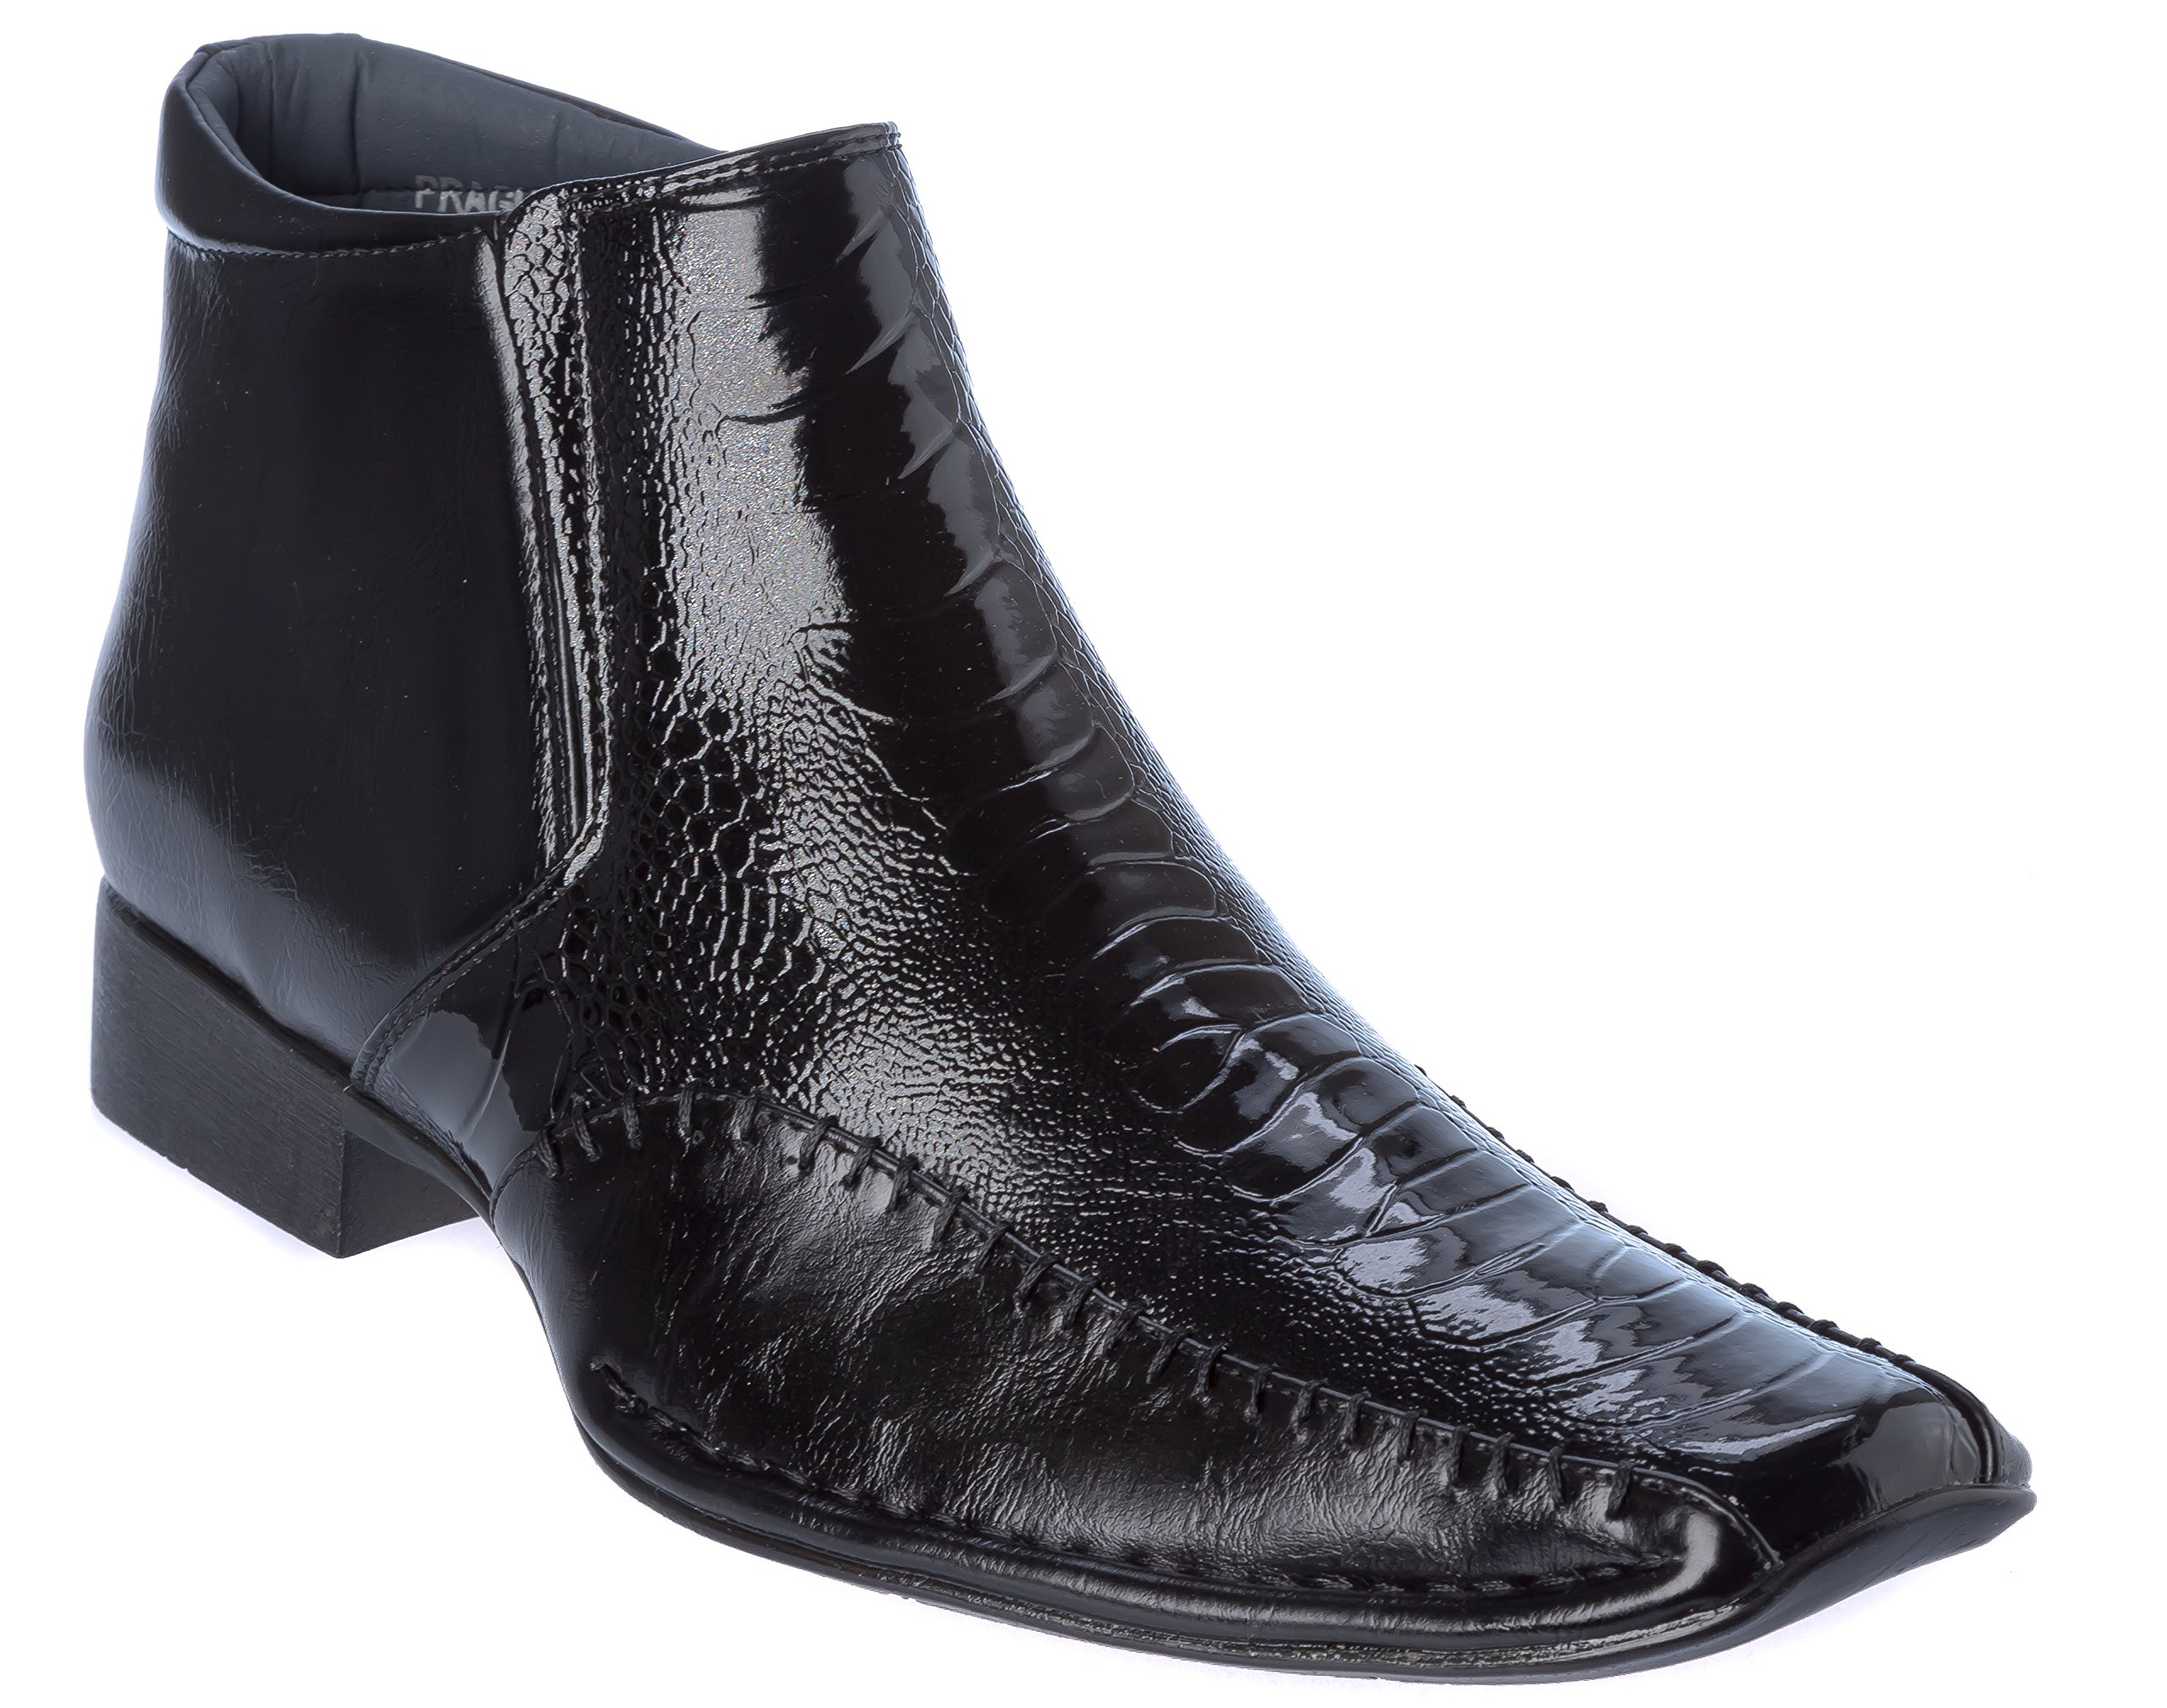 Alberto Fellini Mens Western Style Slip-on Side Zipper Black Patent-Leather Cowboy Boots Size 13